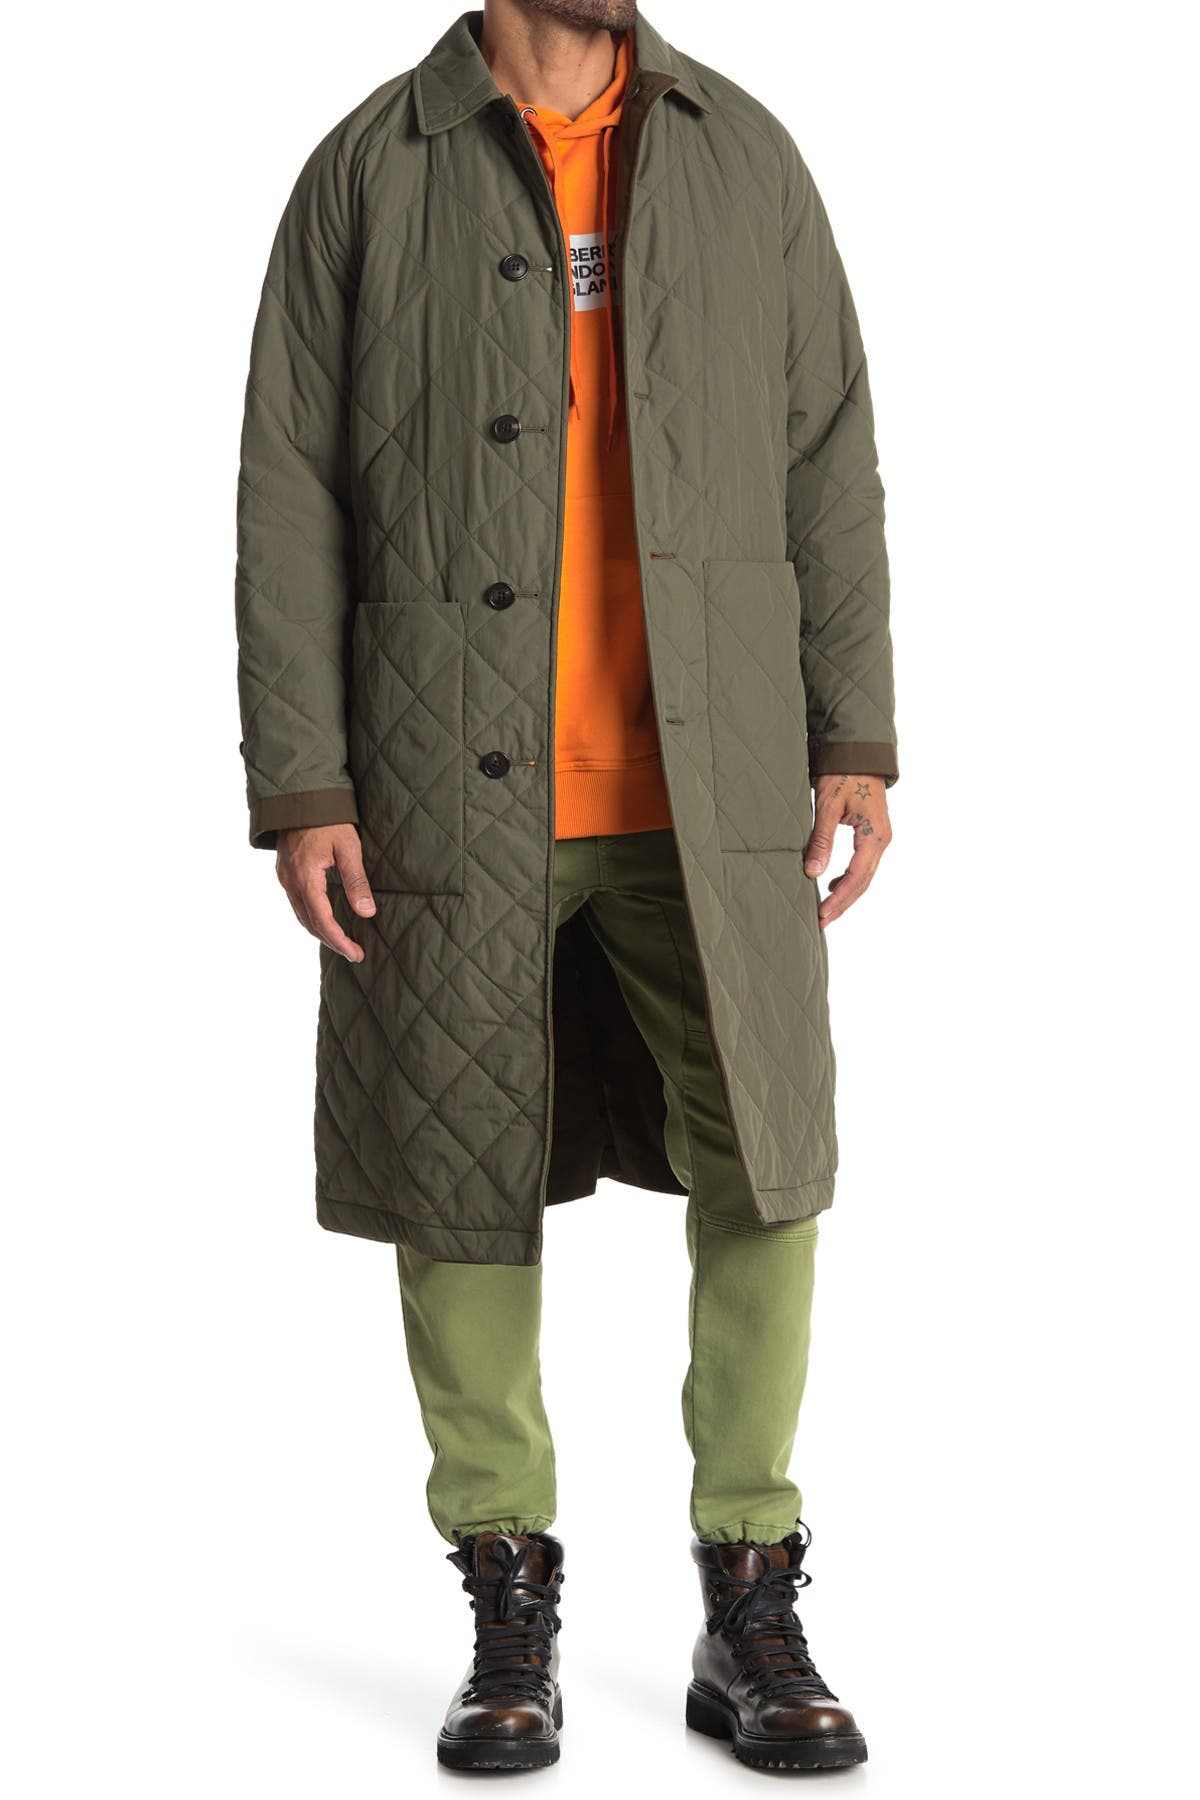 Image of Burberry Reversible Ableford Car Coat